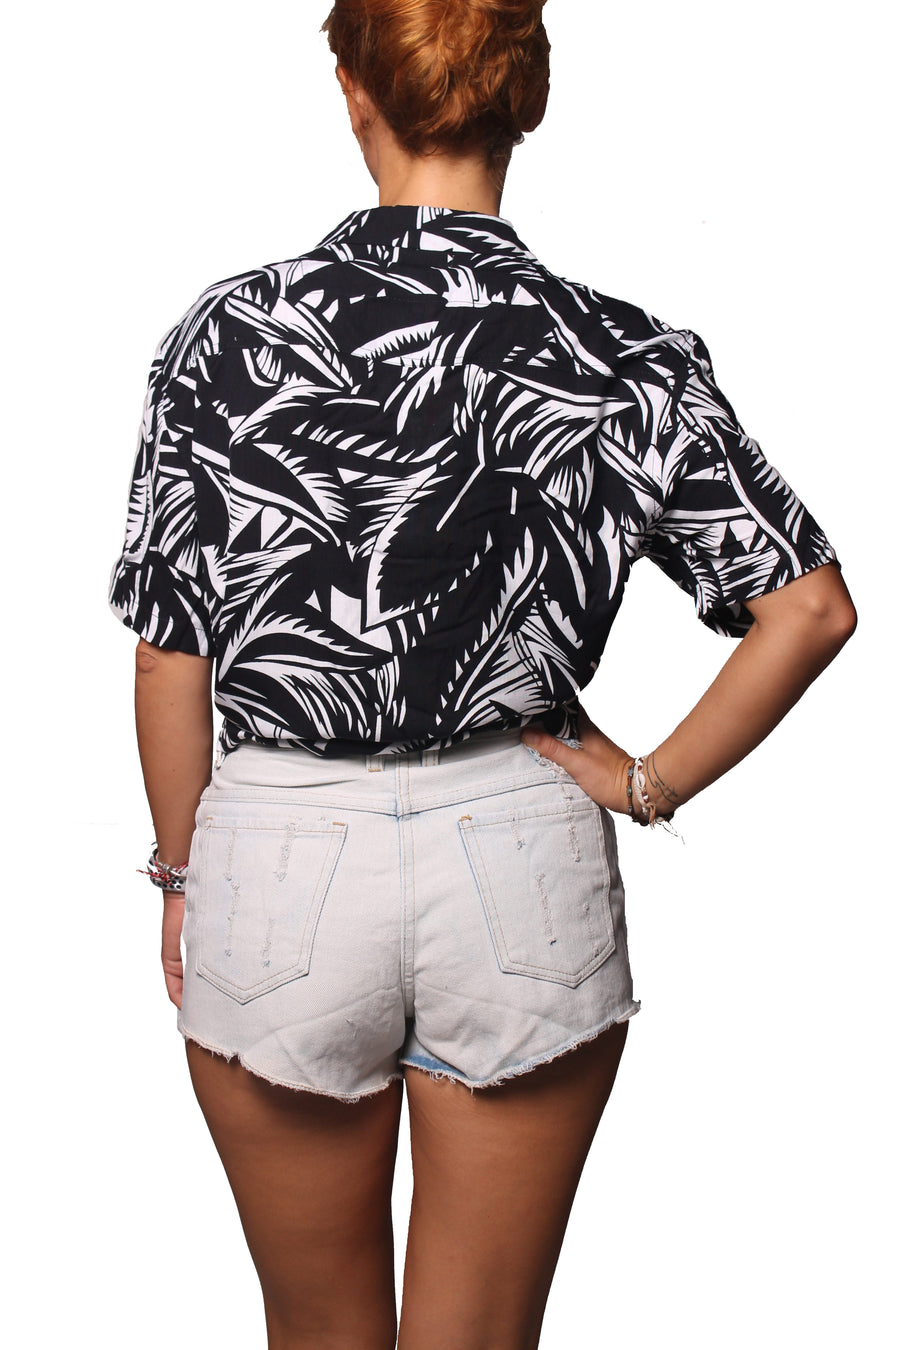 Rain Crop Shirt Daun Black White